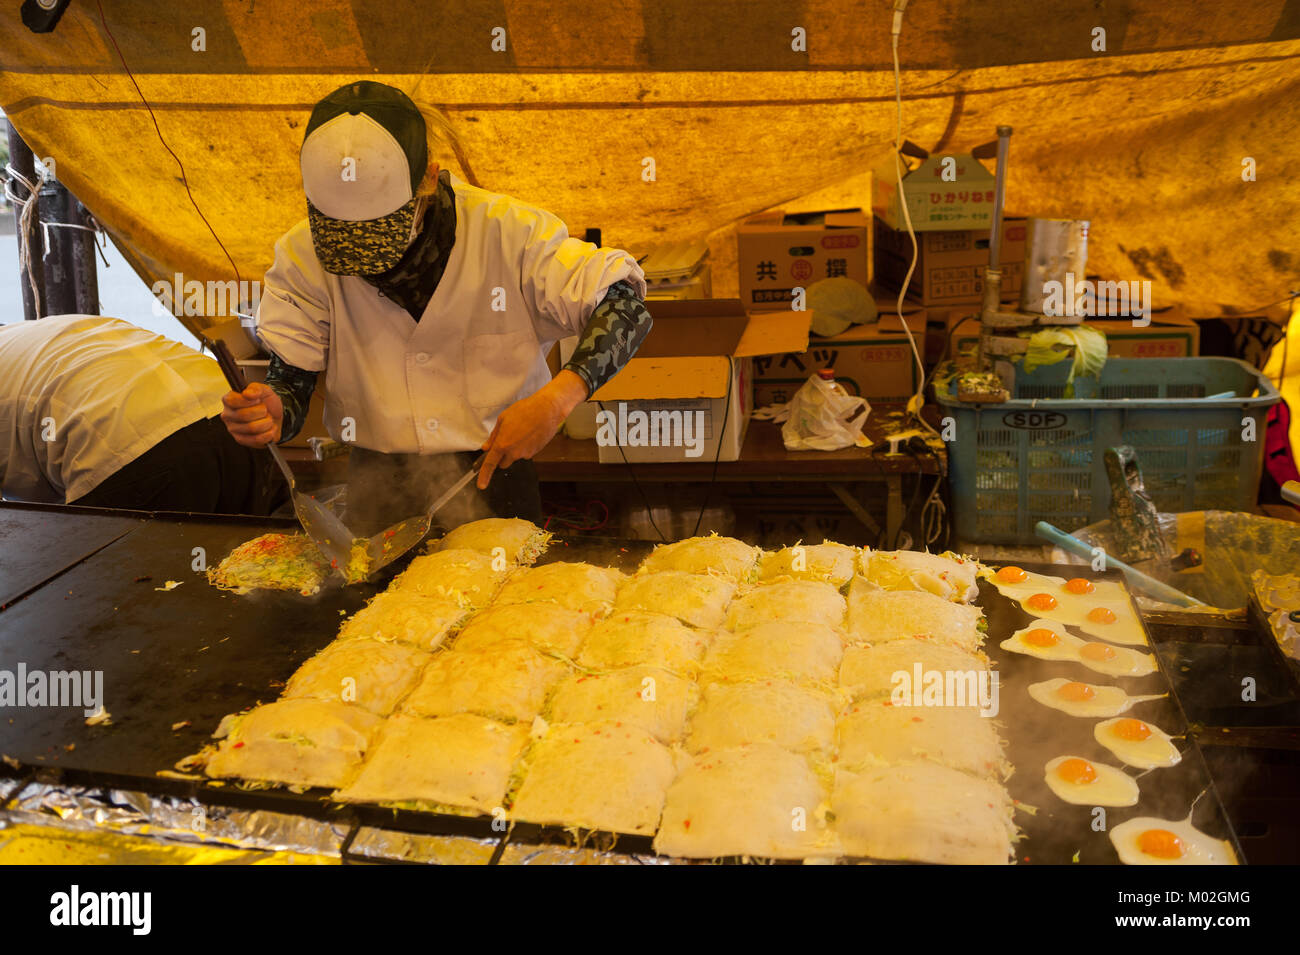 31.12.2017, Tokyo, Japan, Asia - A man prepares freshly roasted pancakes at a street stall in Tokyo's city district - Stock Image